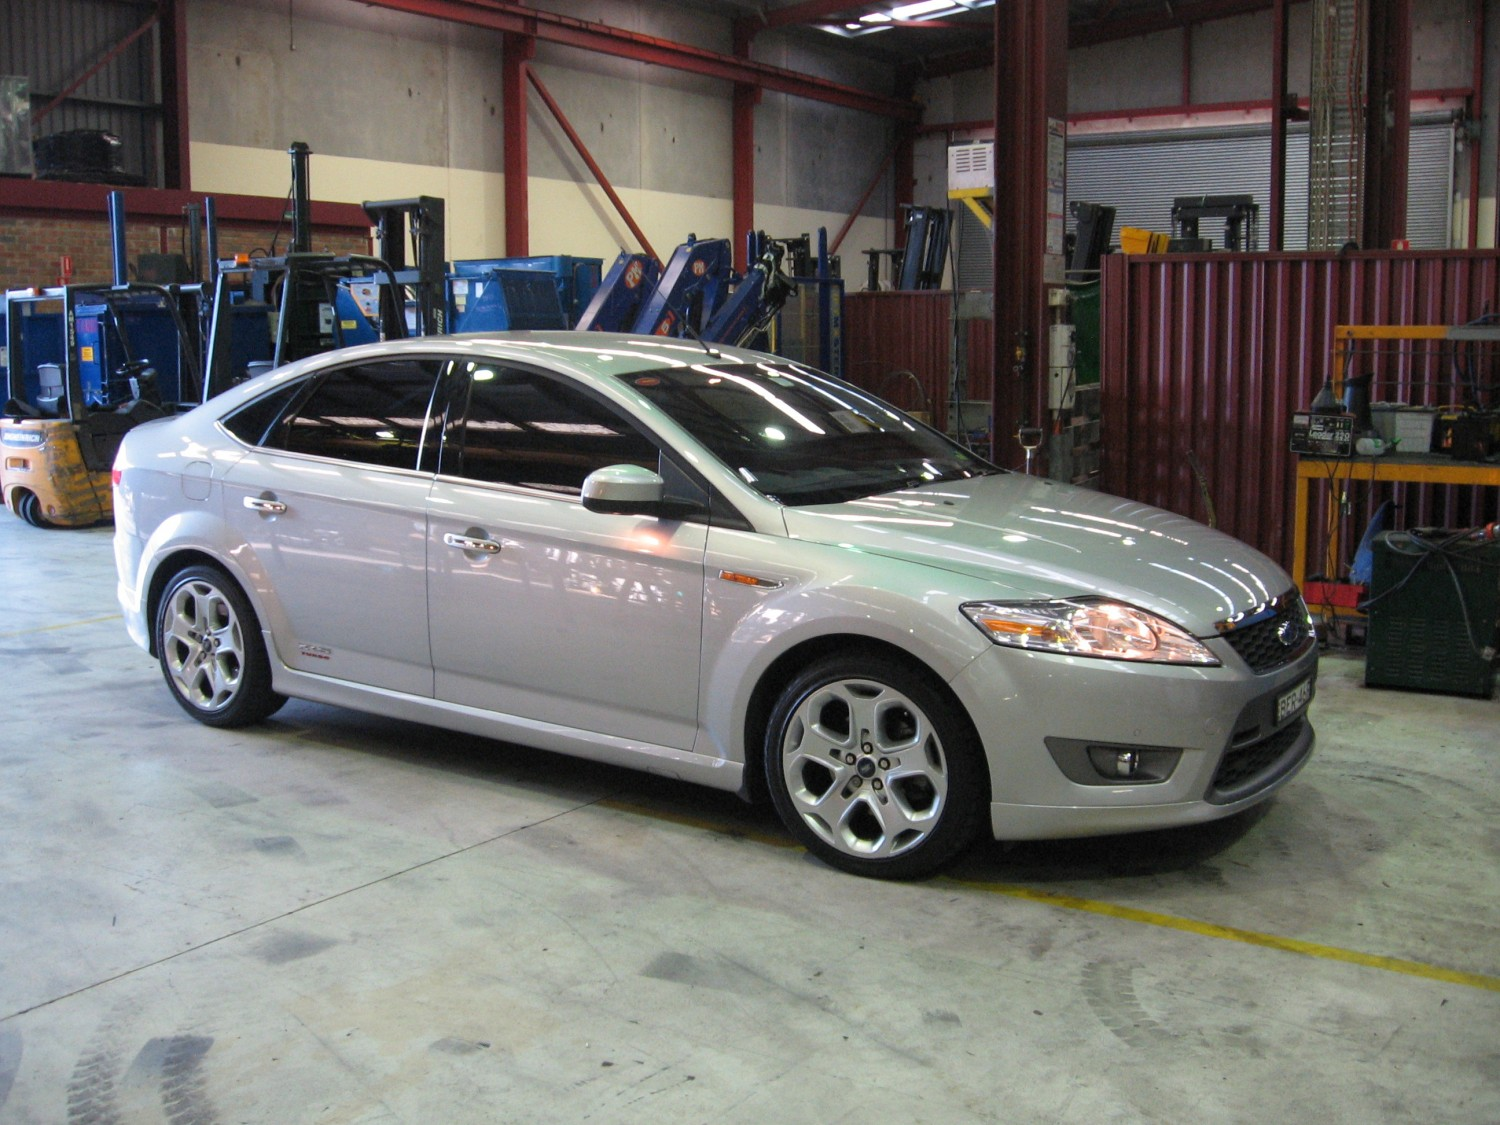 2008 Ford MONDEO XR5 TURBO - 64sportscoupe - Shannons Club